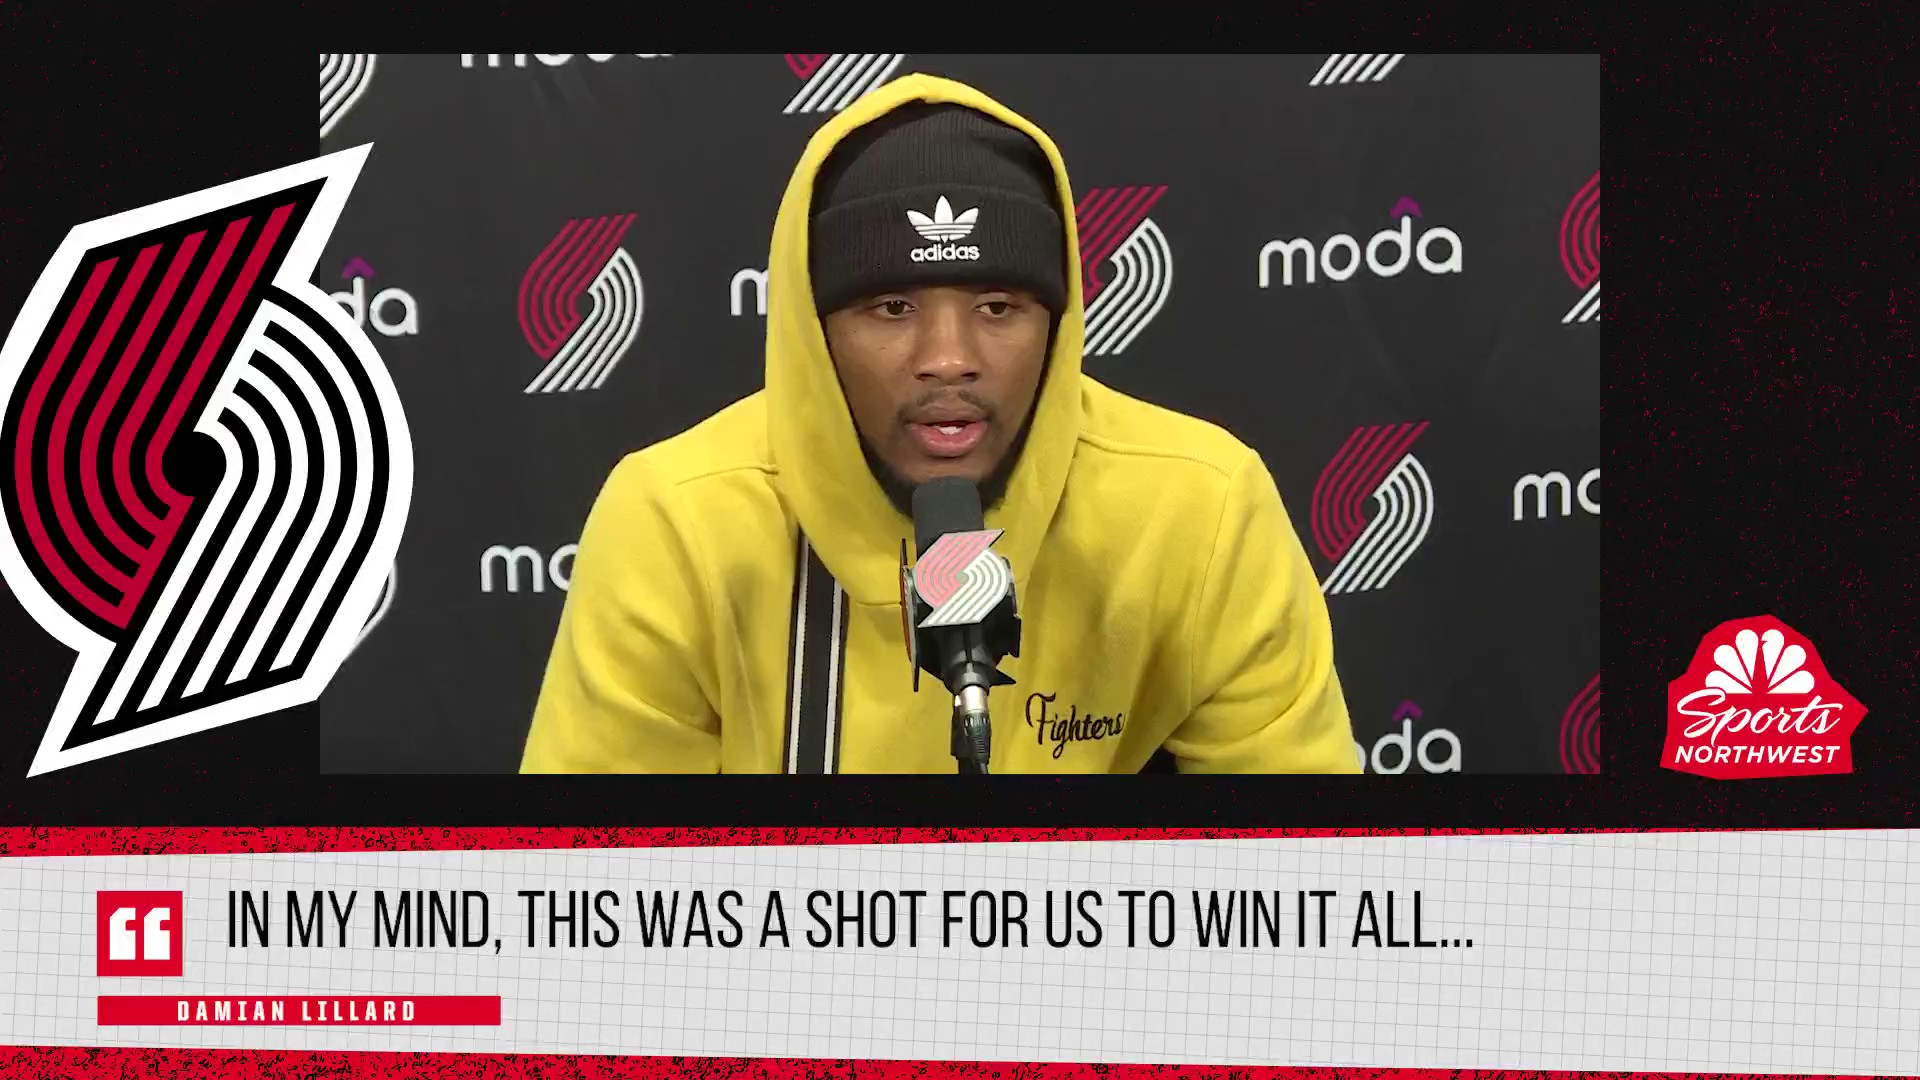 Damian Lillard: In my mind, this was a chance to win it all